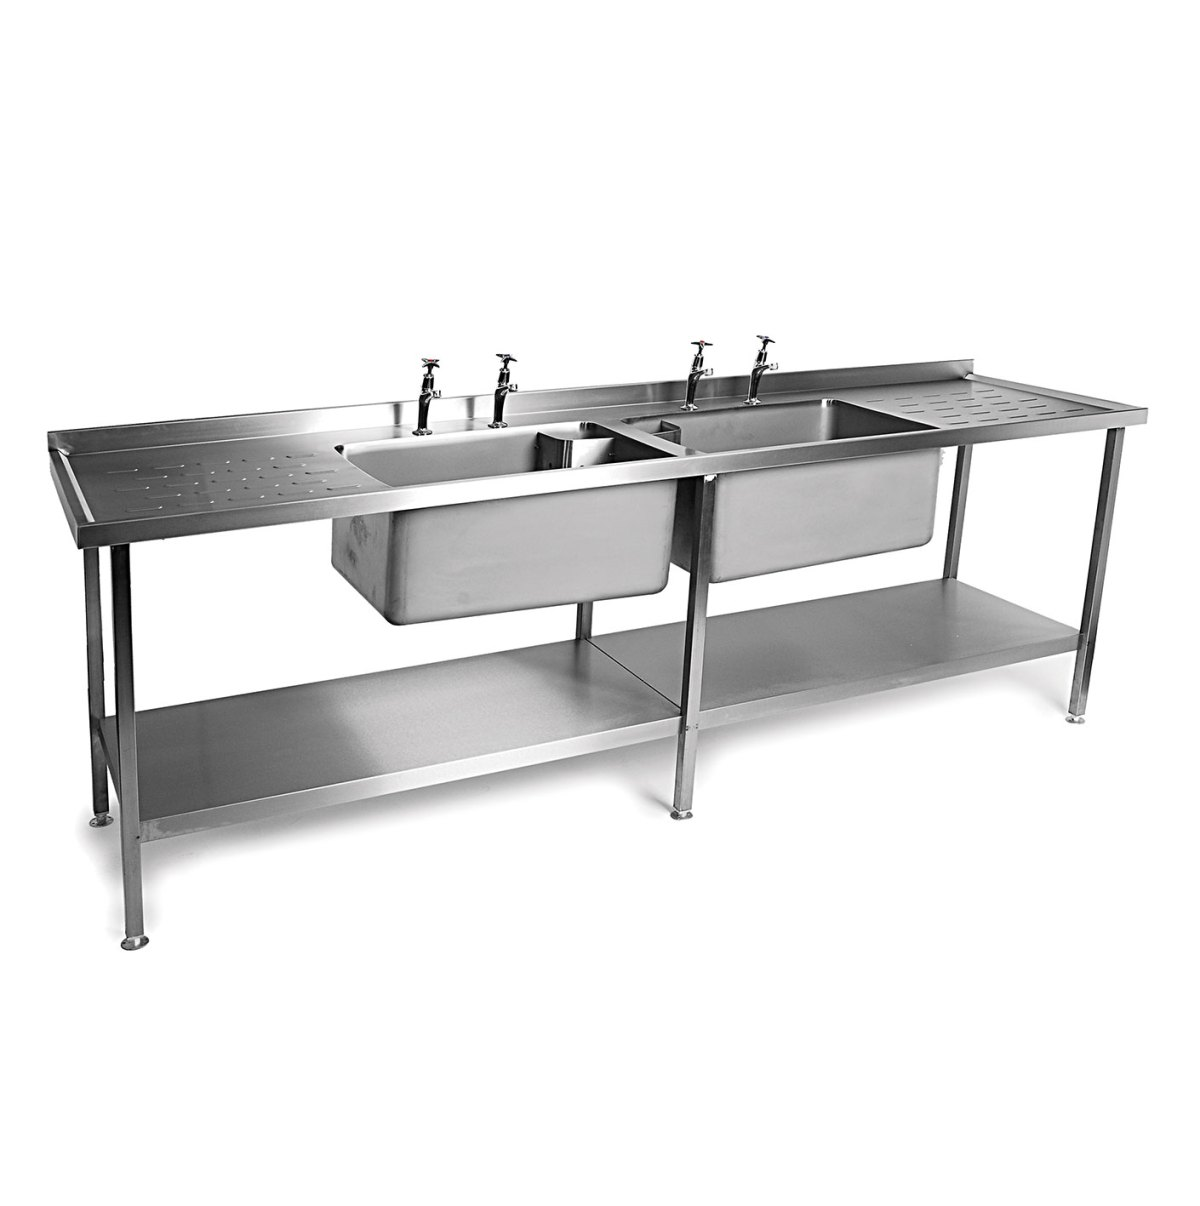 Stainless Fabrication